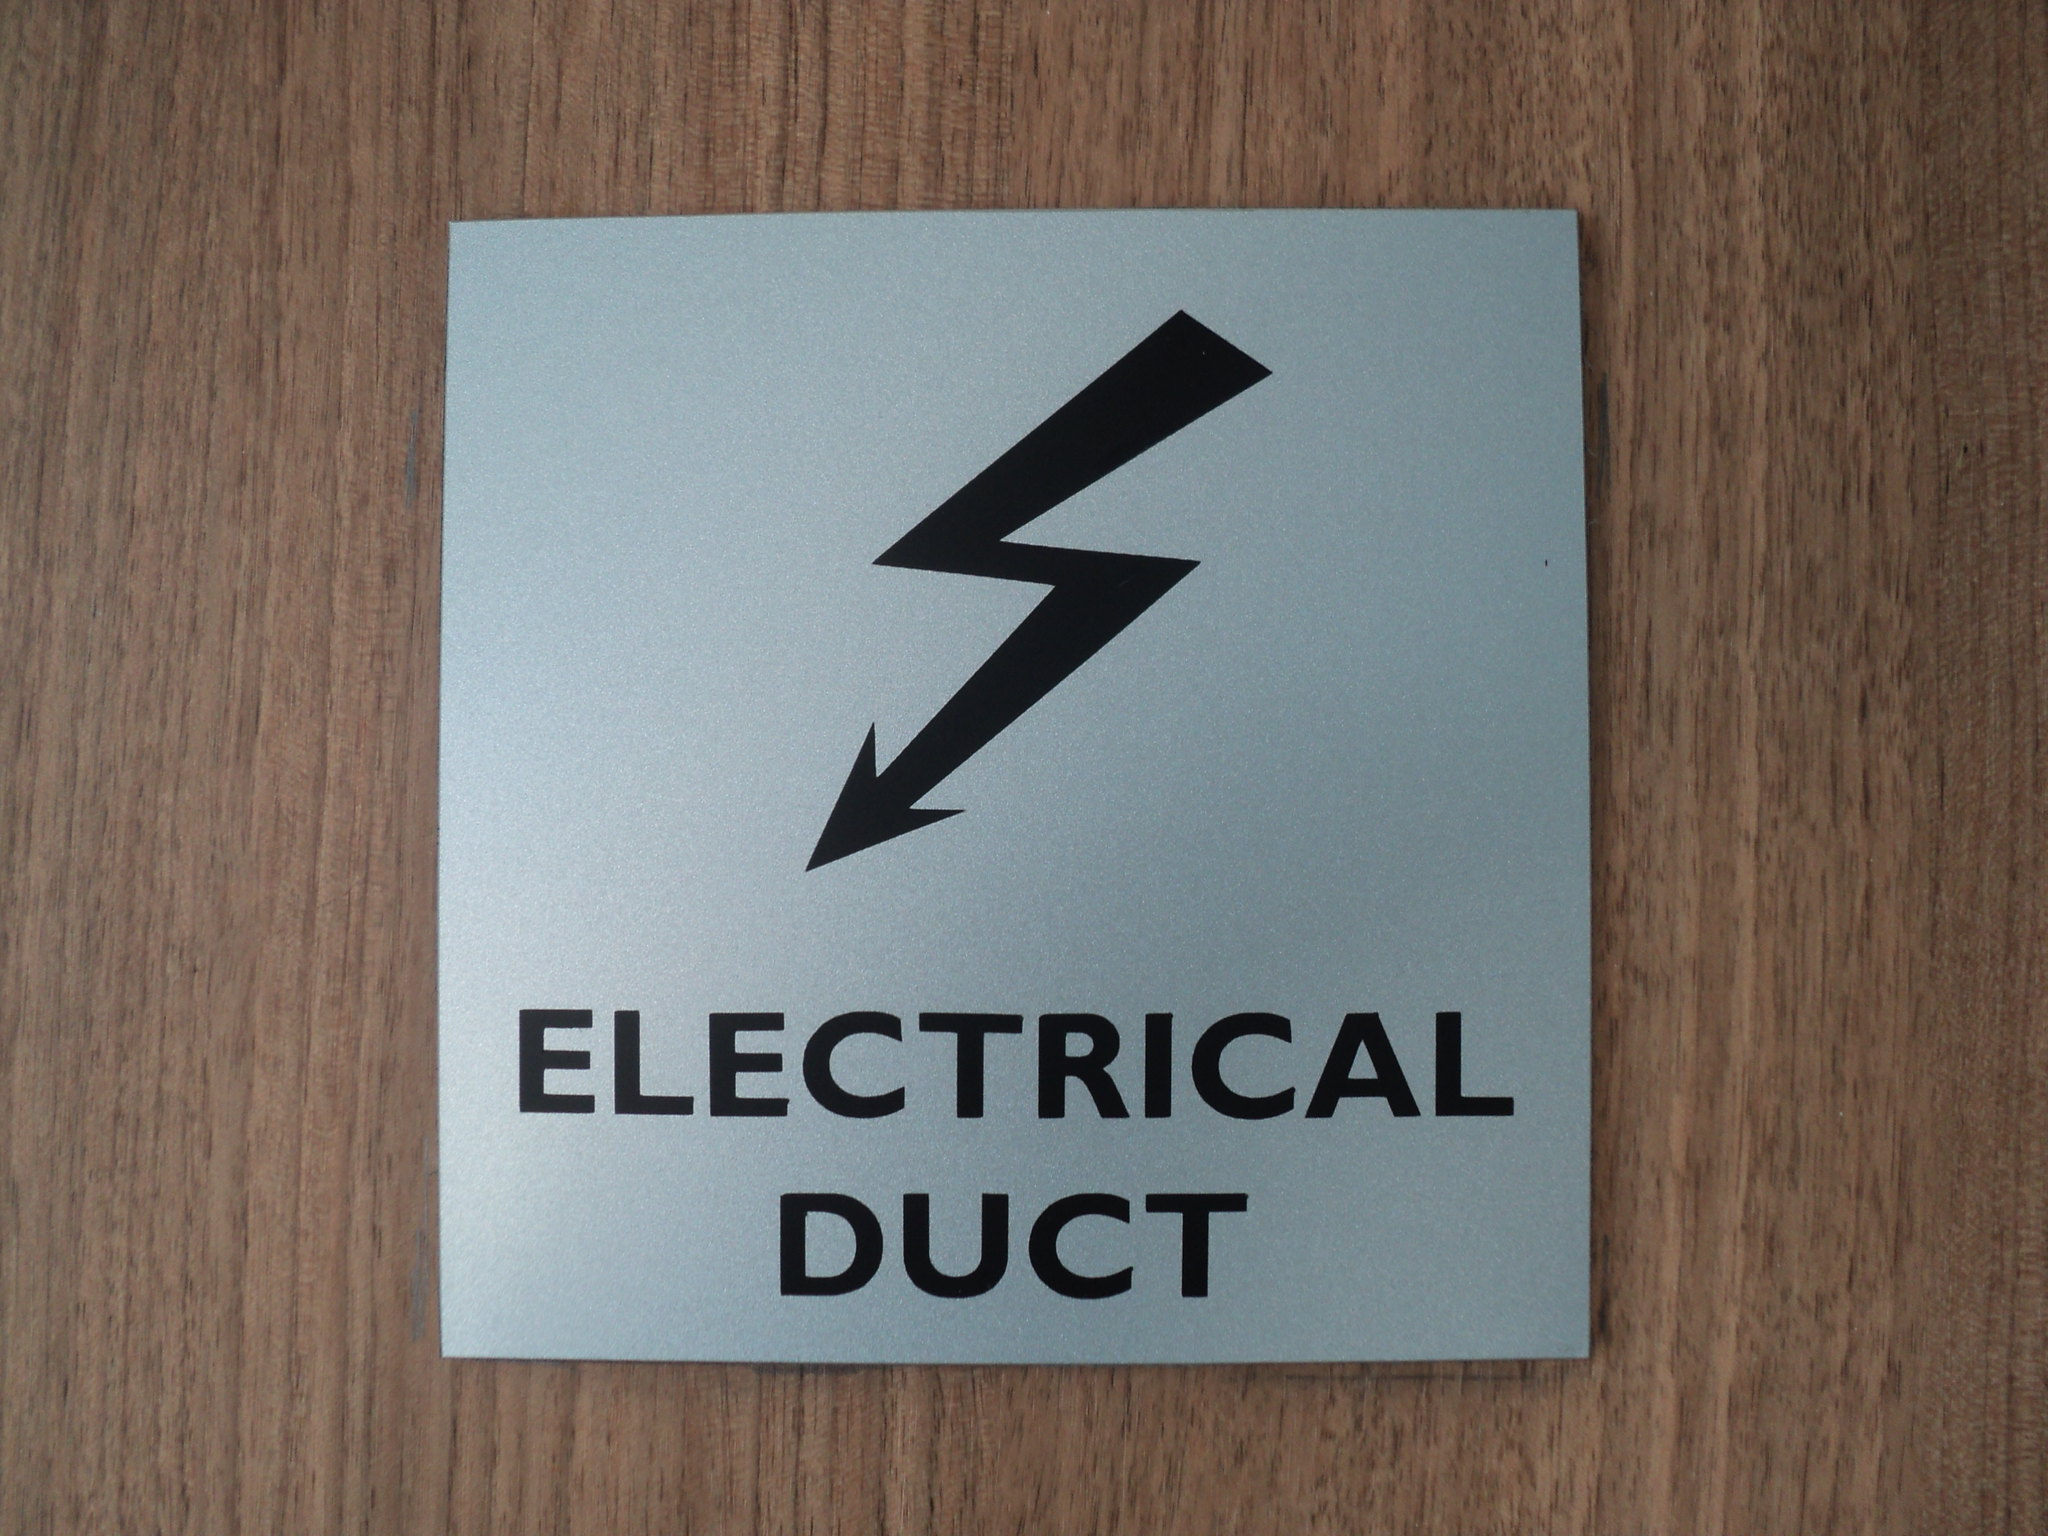 Electricity is needed in buildings